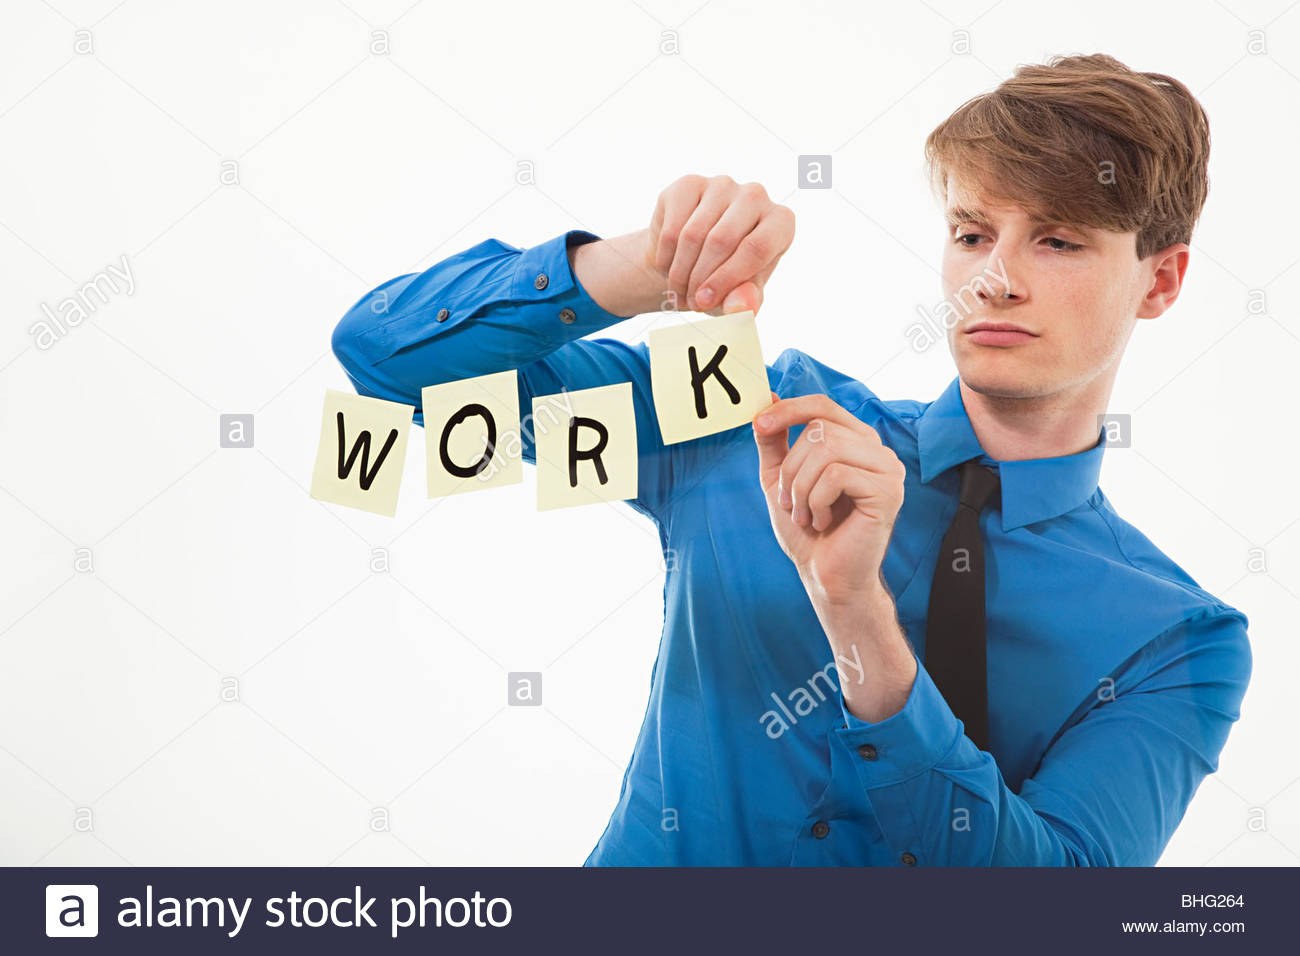 Man spelling work with adhesive notes - Stock Image